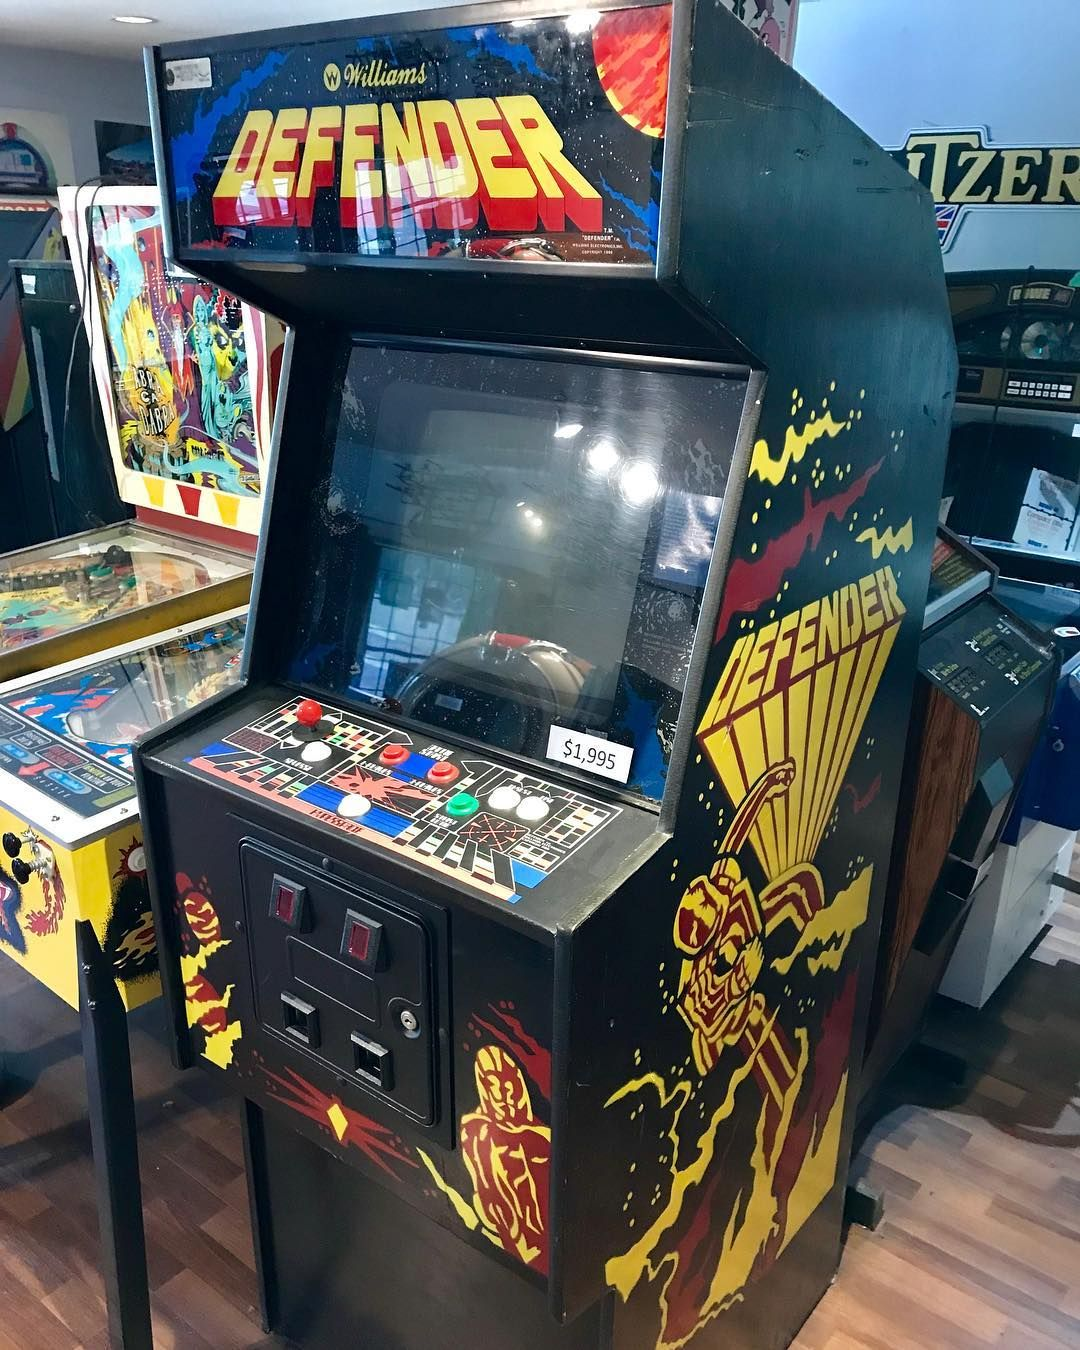 Williams Defender From 1981 Designers Eugene Jarvis And Larry Demar Created One Of The Most Successful Video Arcade Arcade Machine Arcade Arcade Video Games